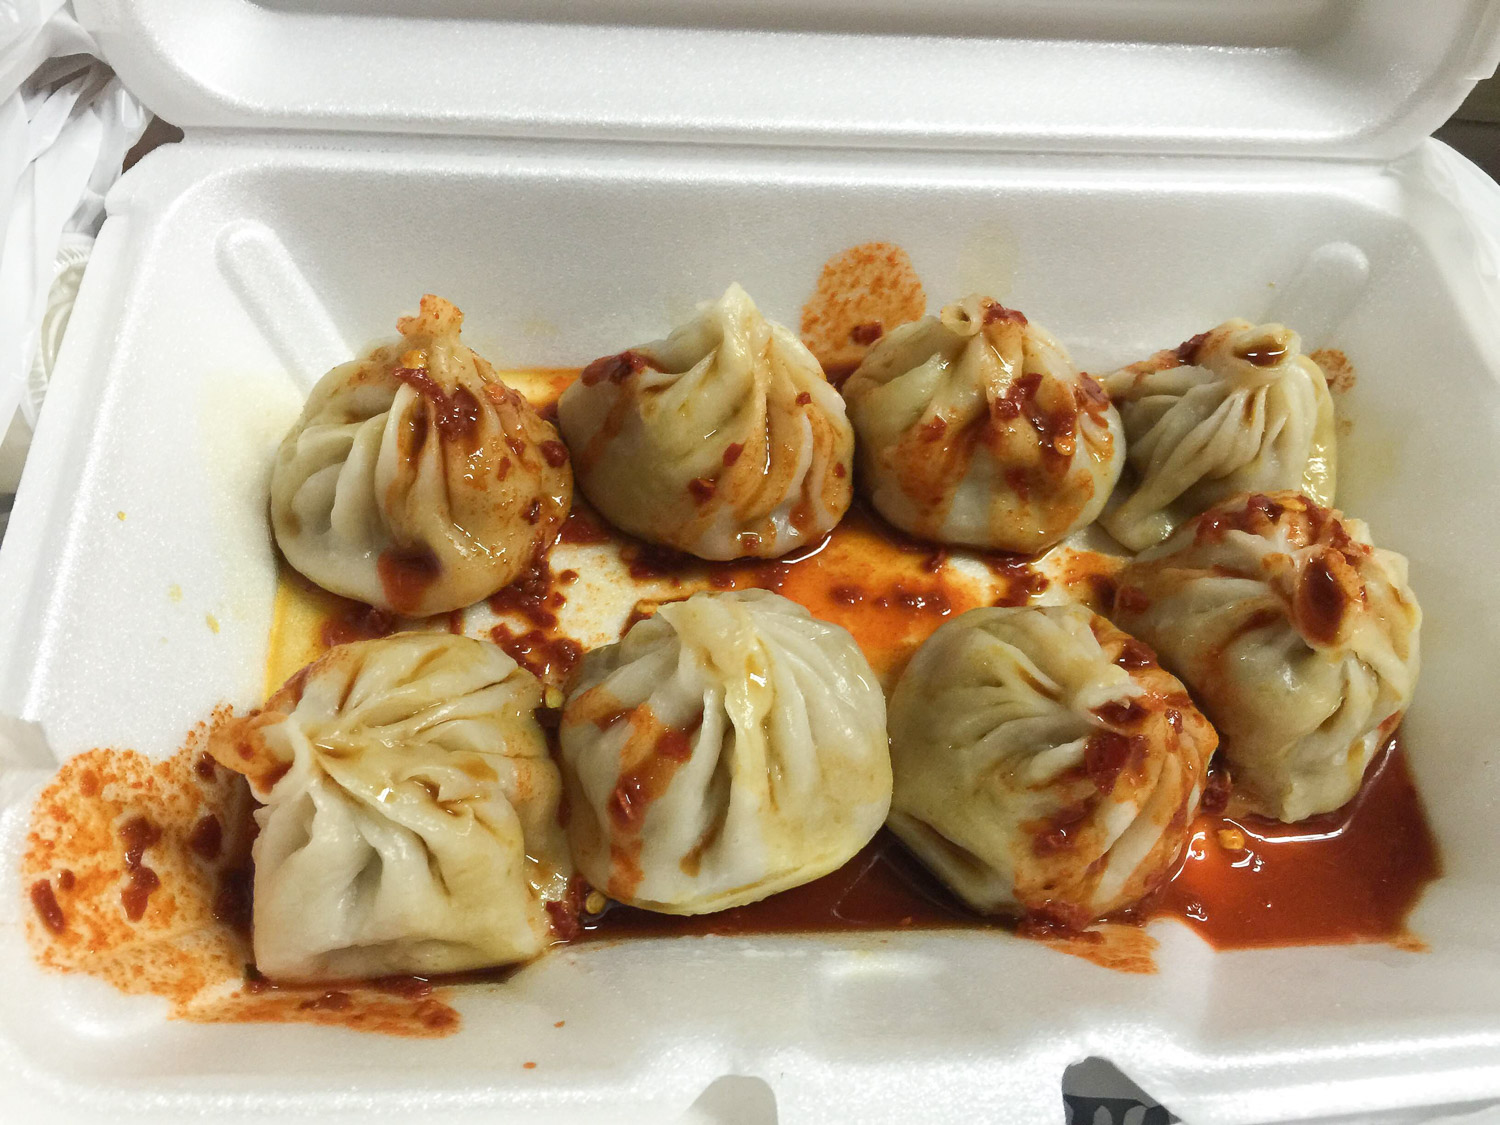 Tibetan momo's smothered in a mix of black vinegar, soy and chili sauce. $5, unbelievable.